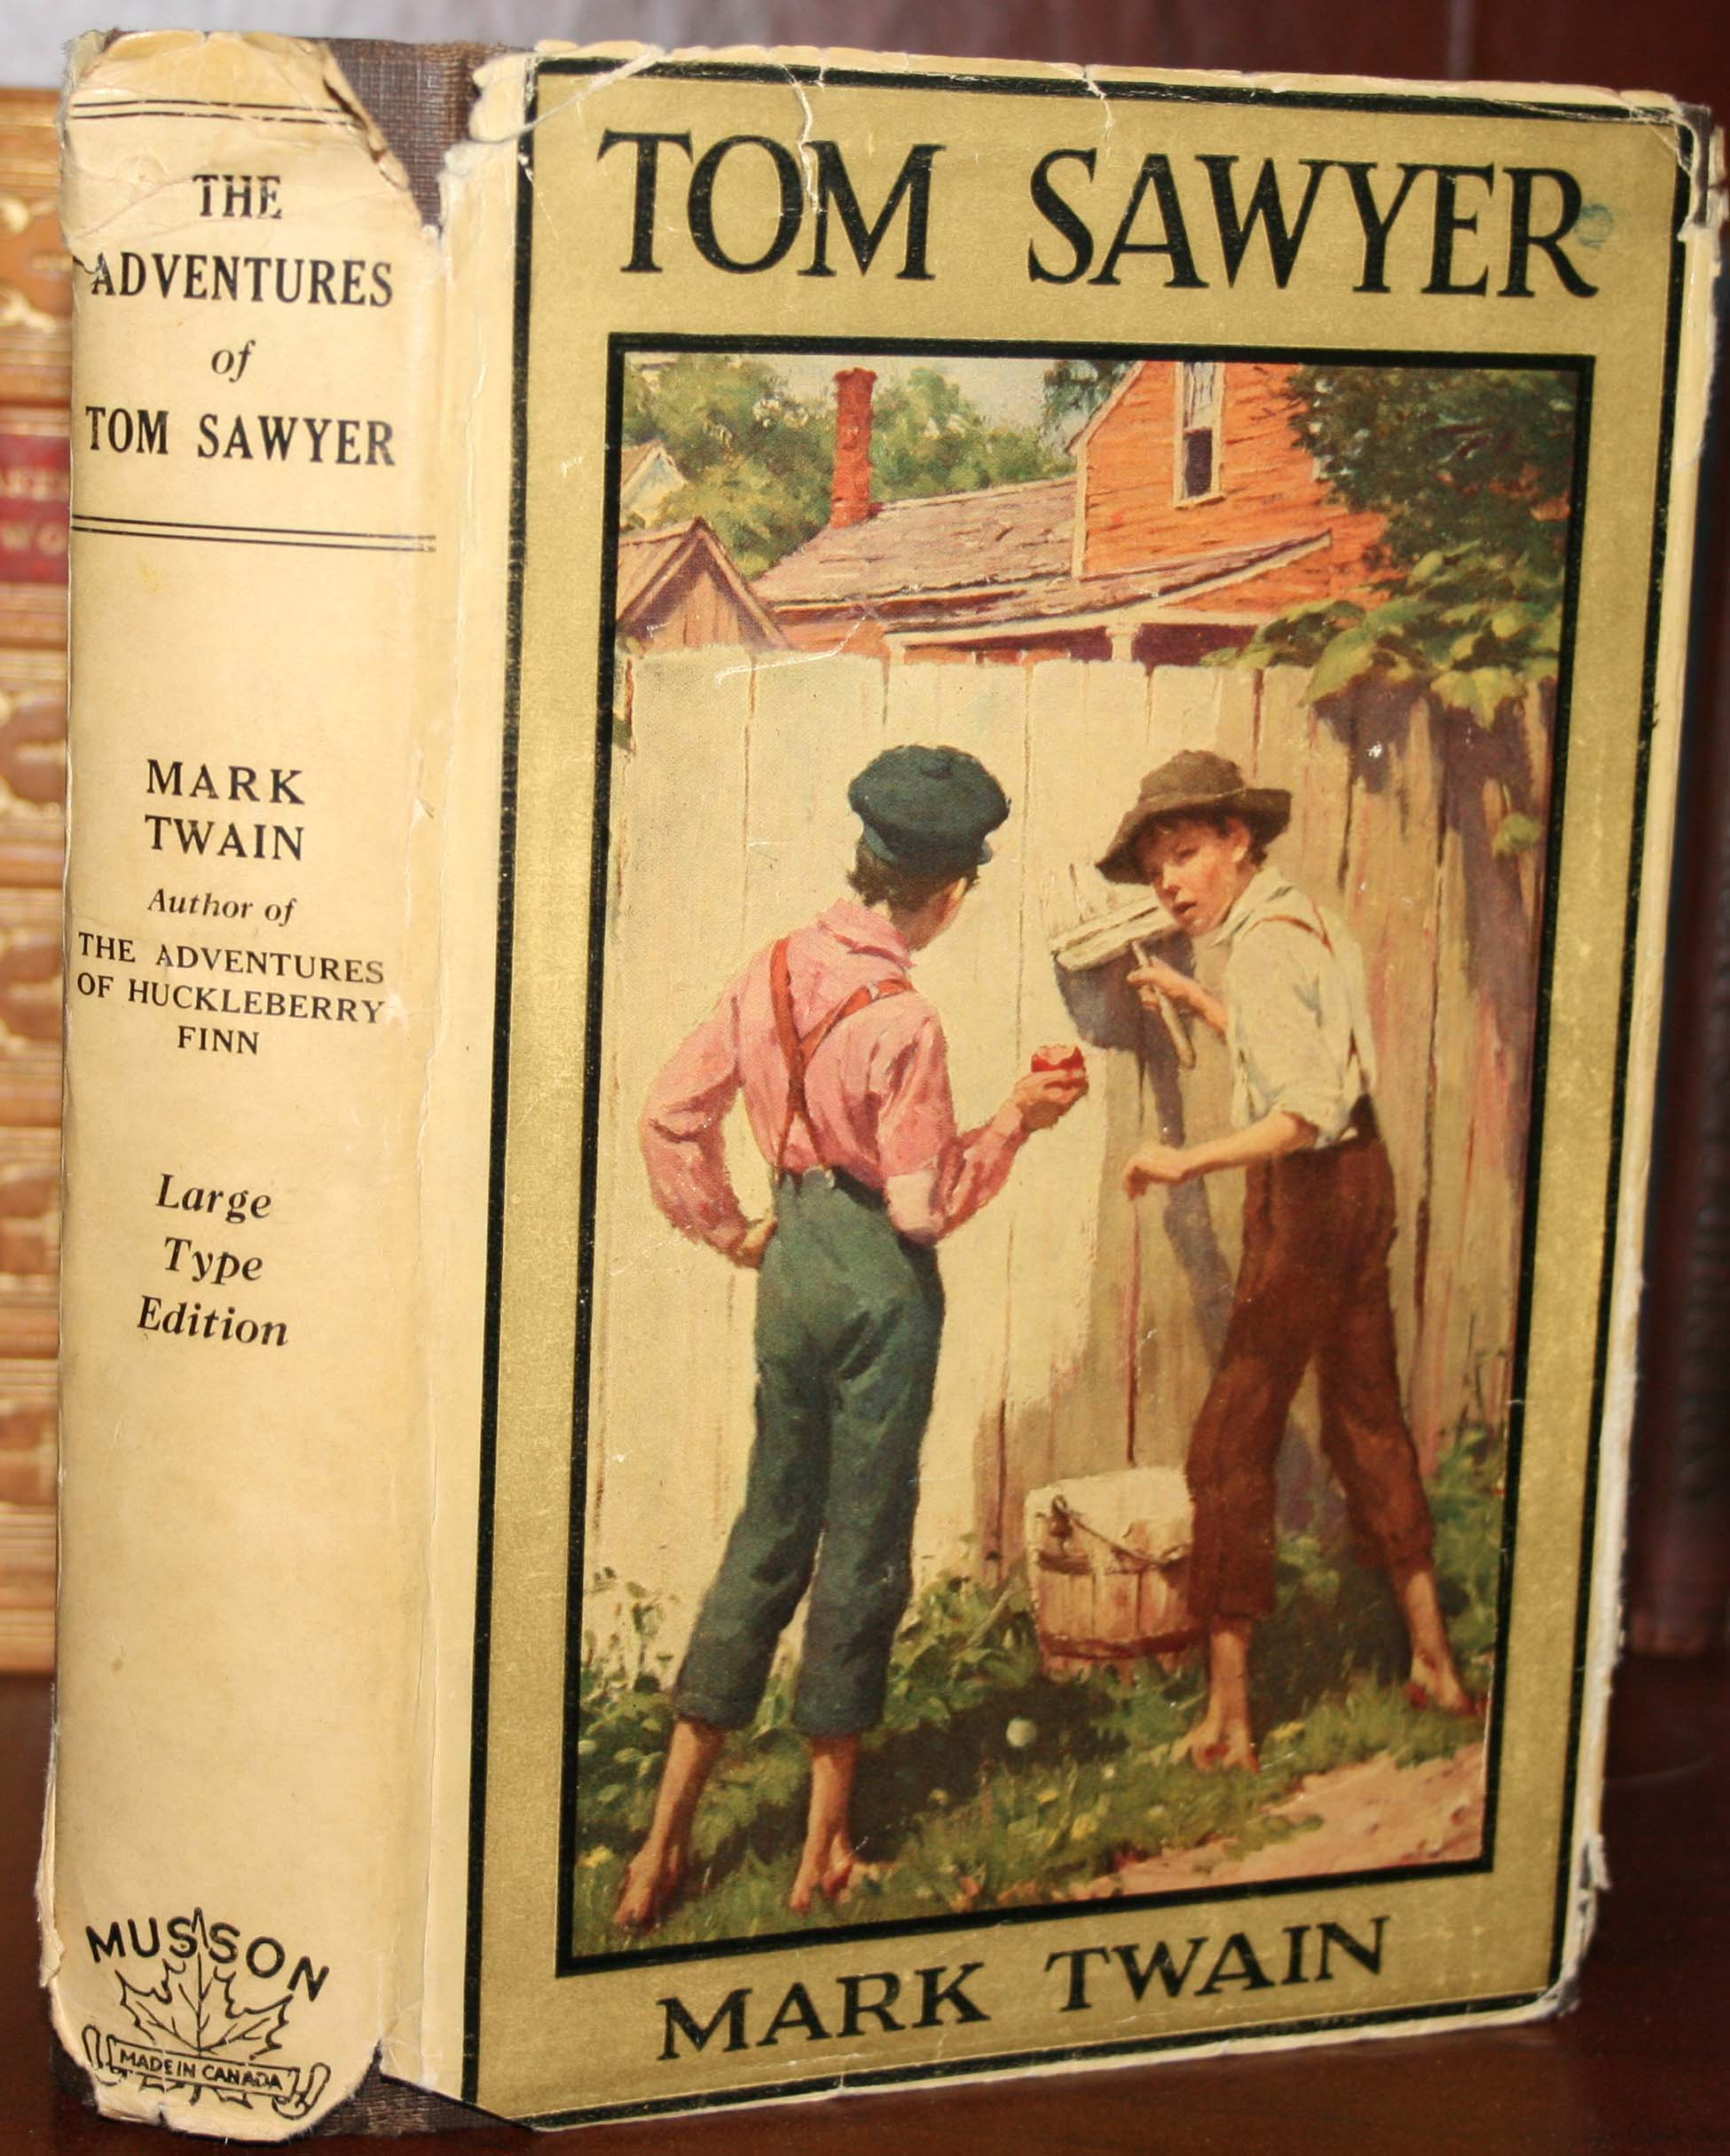 analysis of the adventures of tom sawyer Adventures of tom sawyer, by mark twain the novel the adventures of tom sawyer by mark twain is a narrative of the adventures and events in the life of tom sawyer, a young, mischievous man who lives in st petersburg, missouri.